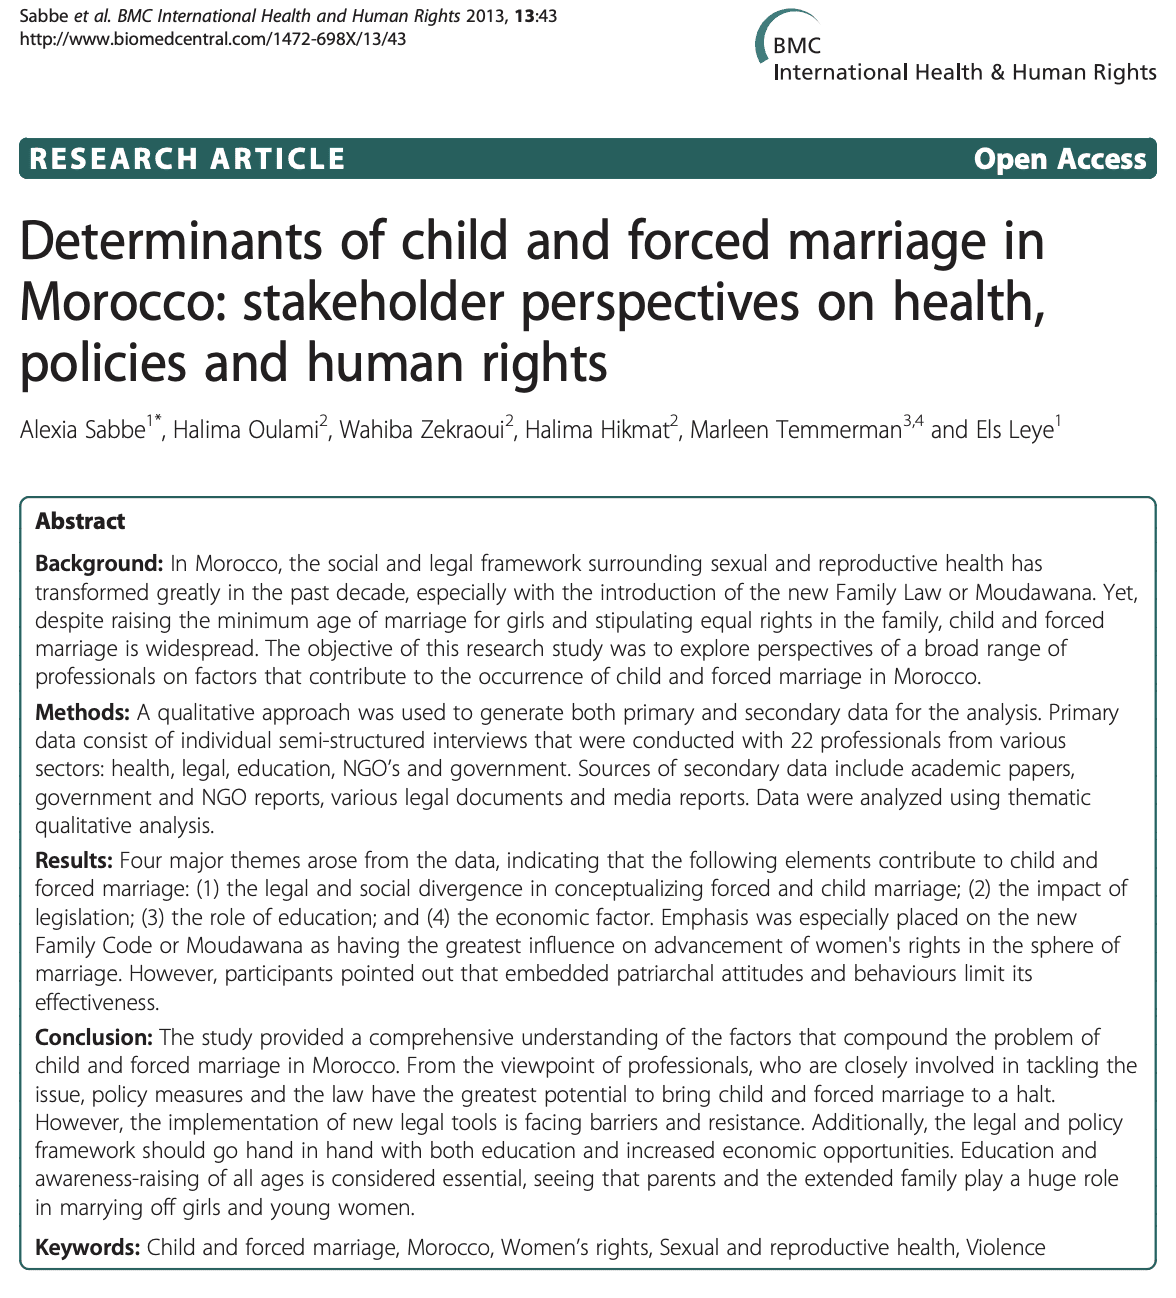 Determinants of child and forced marriage in Morocco: stakeholder perspectives on health, policies and human rights